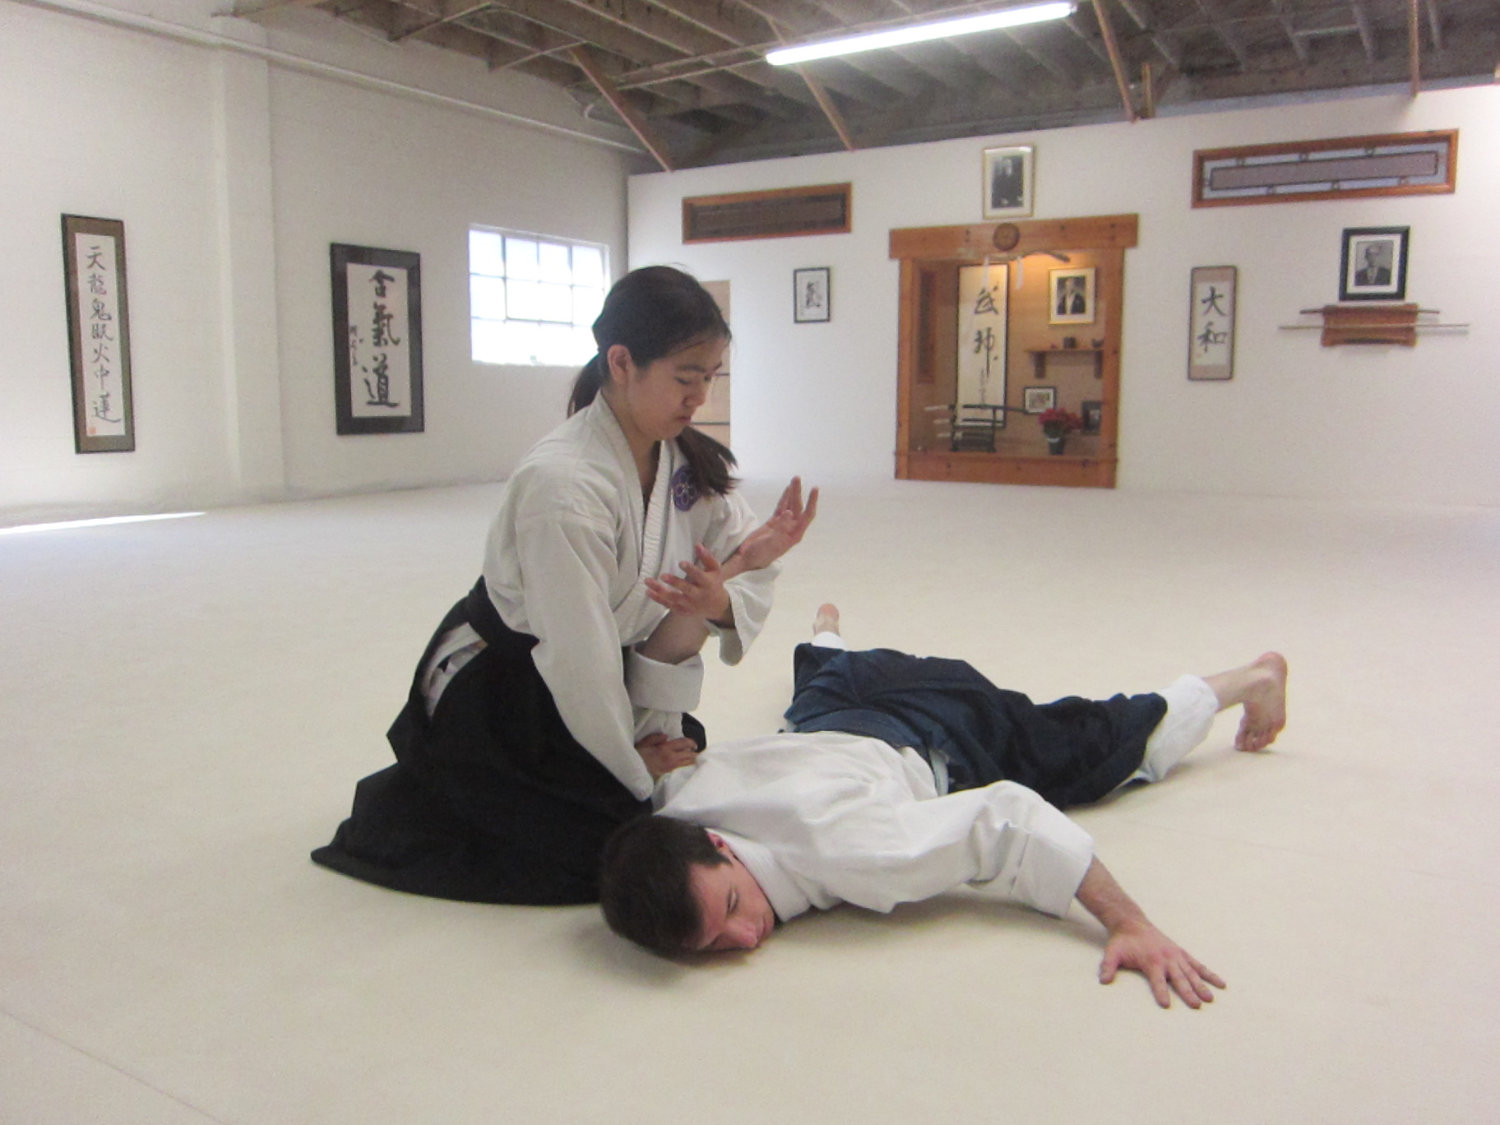 Practicing aikido at Aikido Daiwa